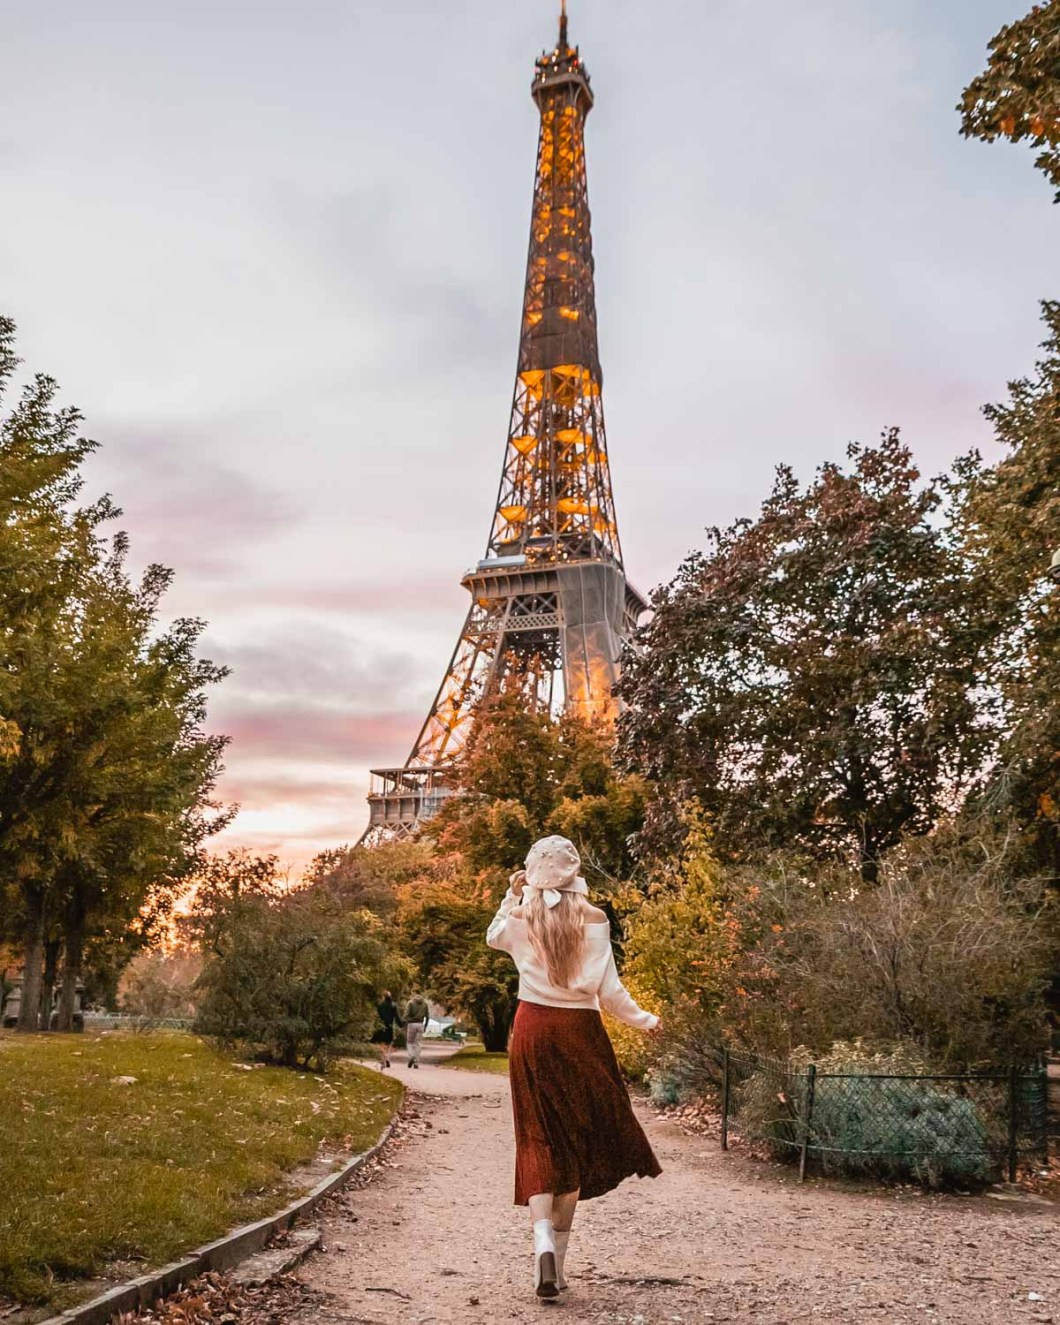 Champ de Mars with the Eiffel Tower